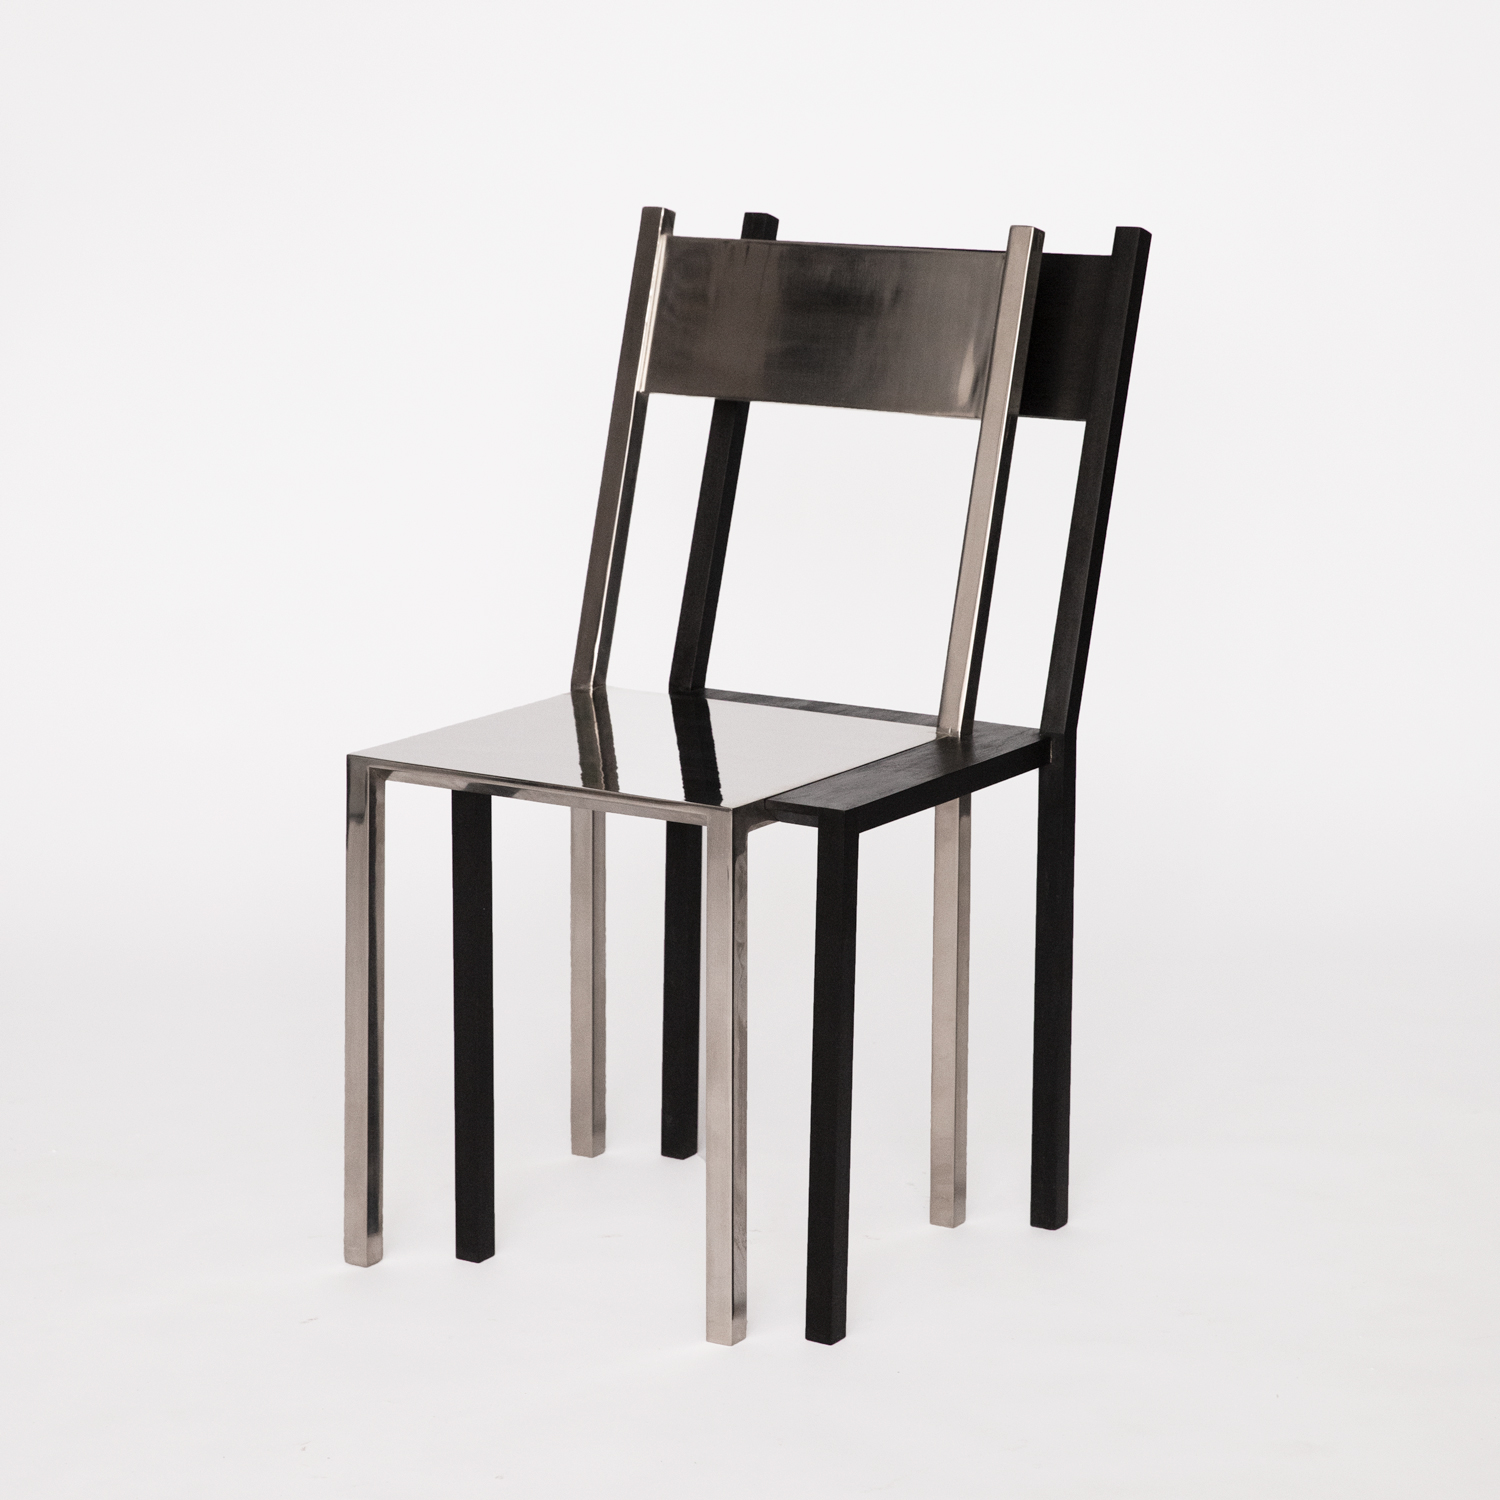 Influenced by drunken nights, the DV Chair is sculpture that expresses the feeling and effect of double vision. By combining reflective and opaque materials, two perceived images overlap and are perceived as one holistic object. Welded in Philadelphia, PA and built in Brooklyn, NY. Edition of 10, 2 APs.